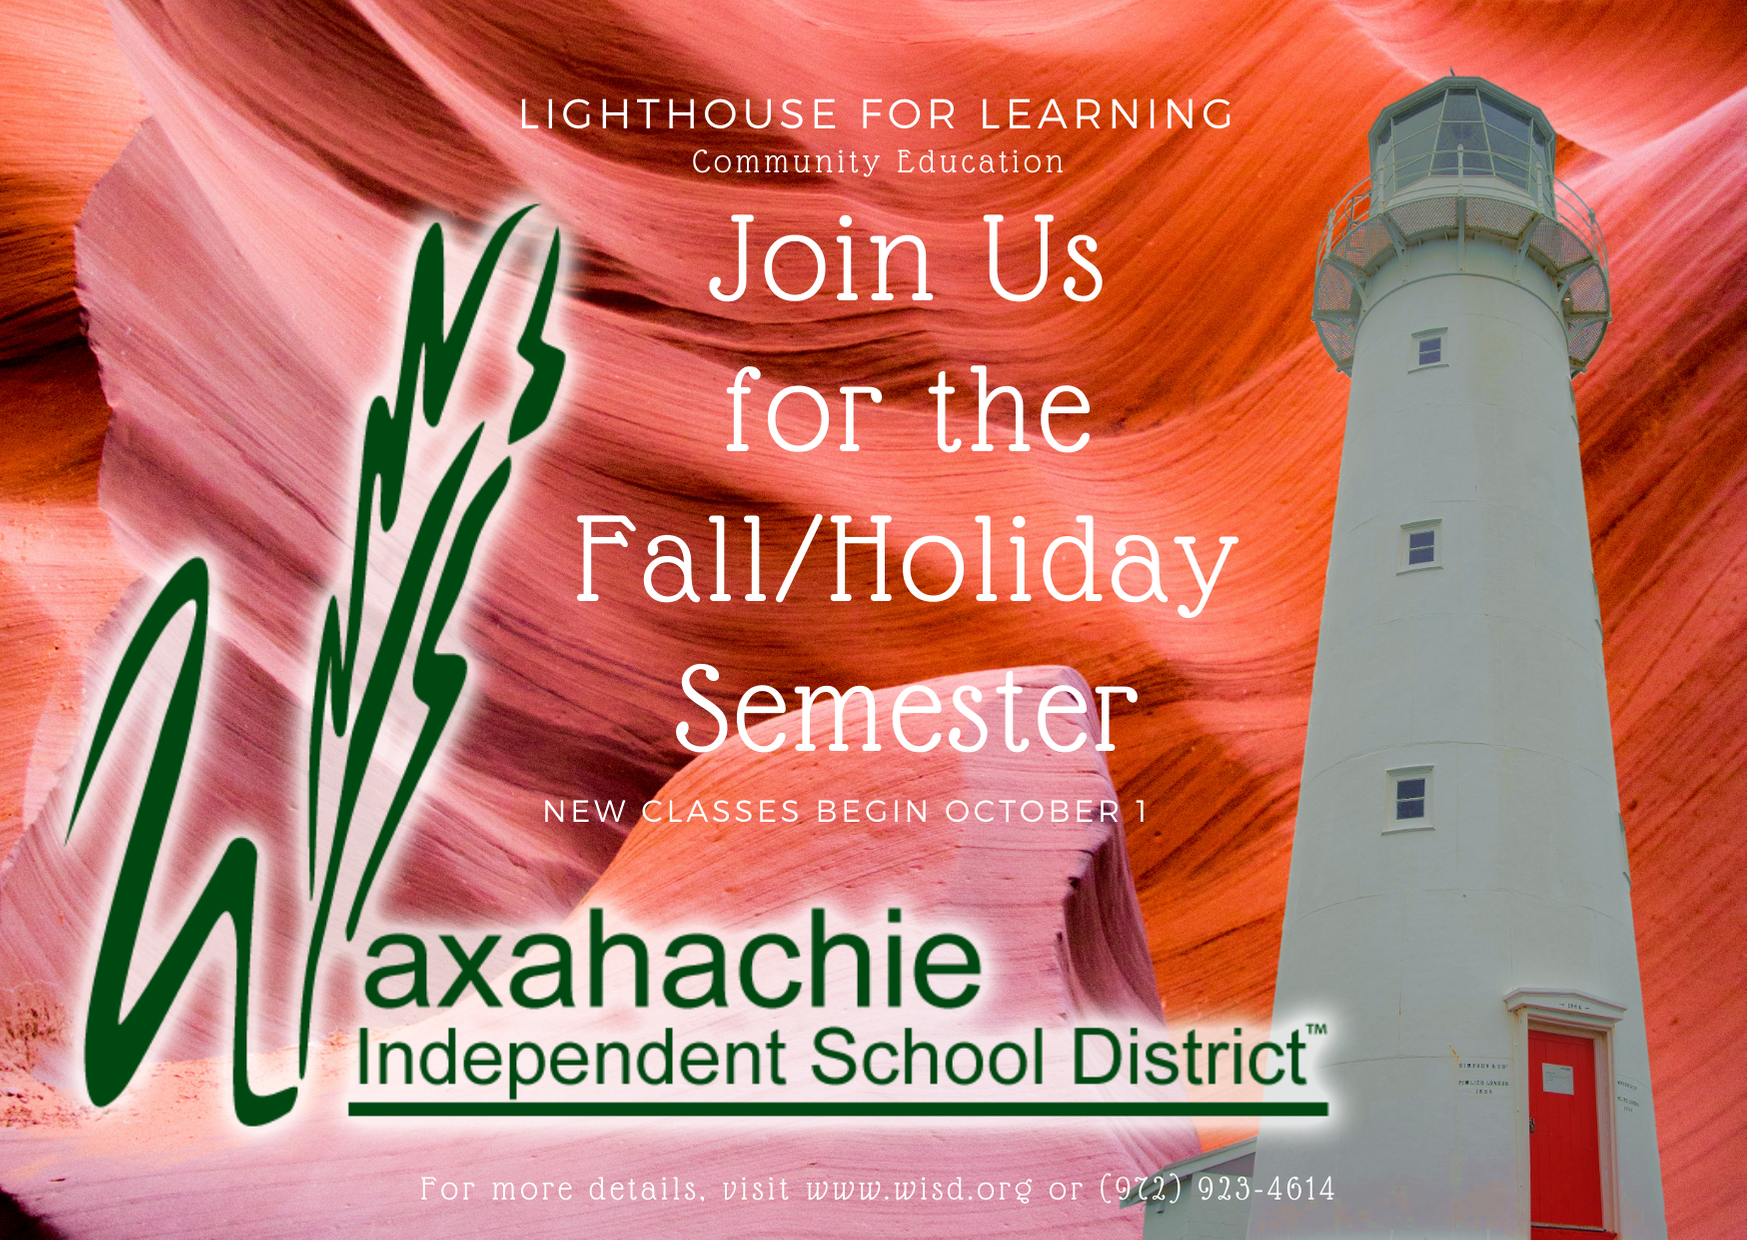 graphic with a lighthouse describing Lighthouse for Learning classes begin on October 1